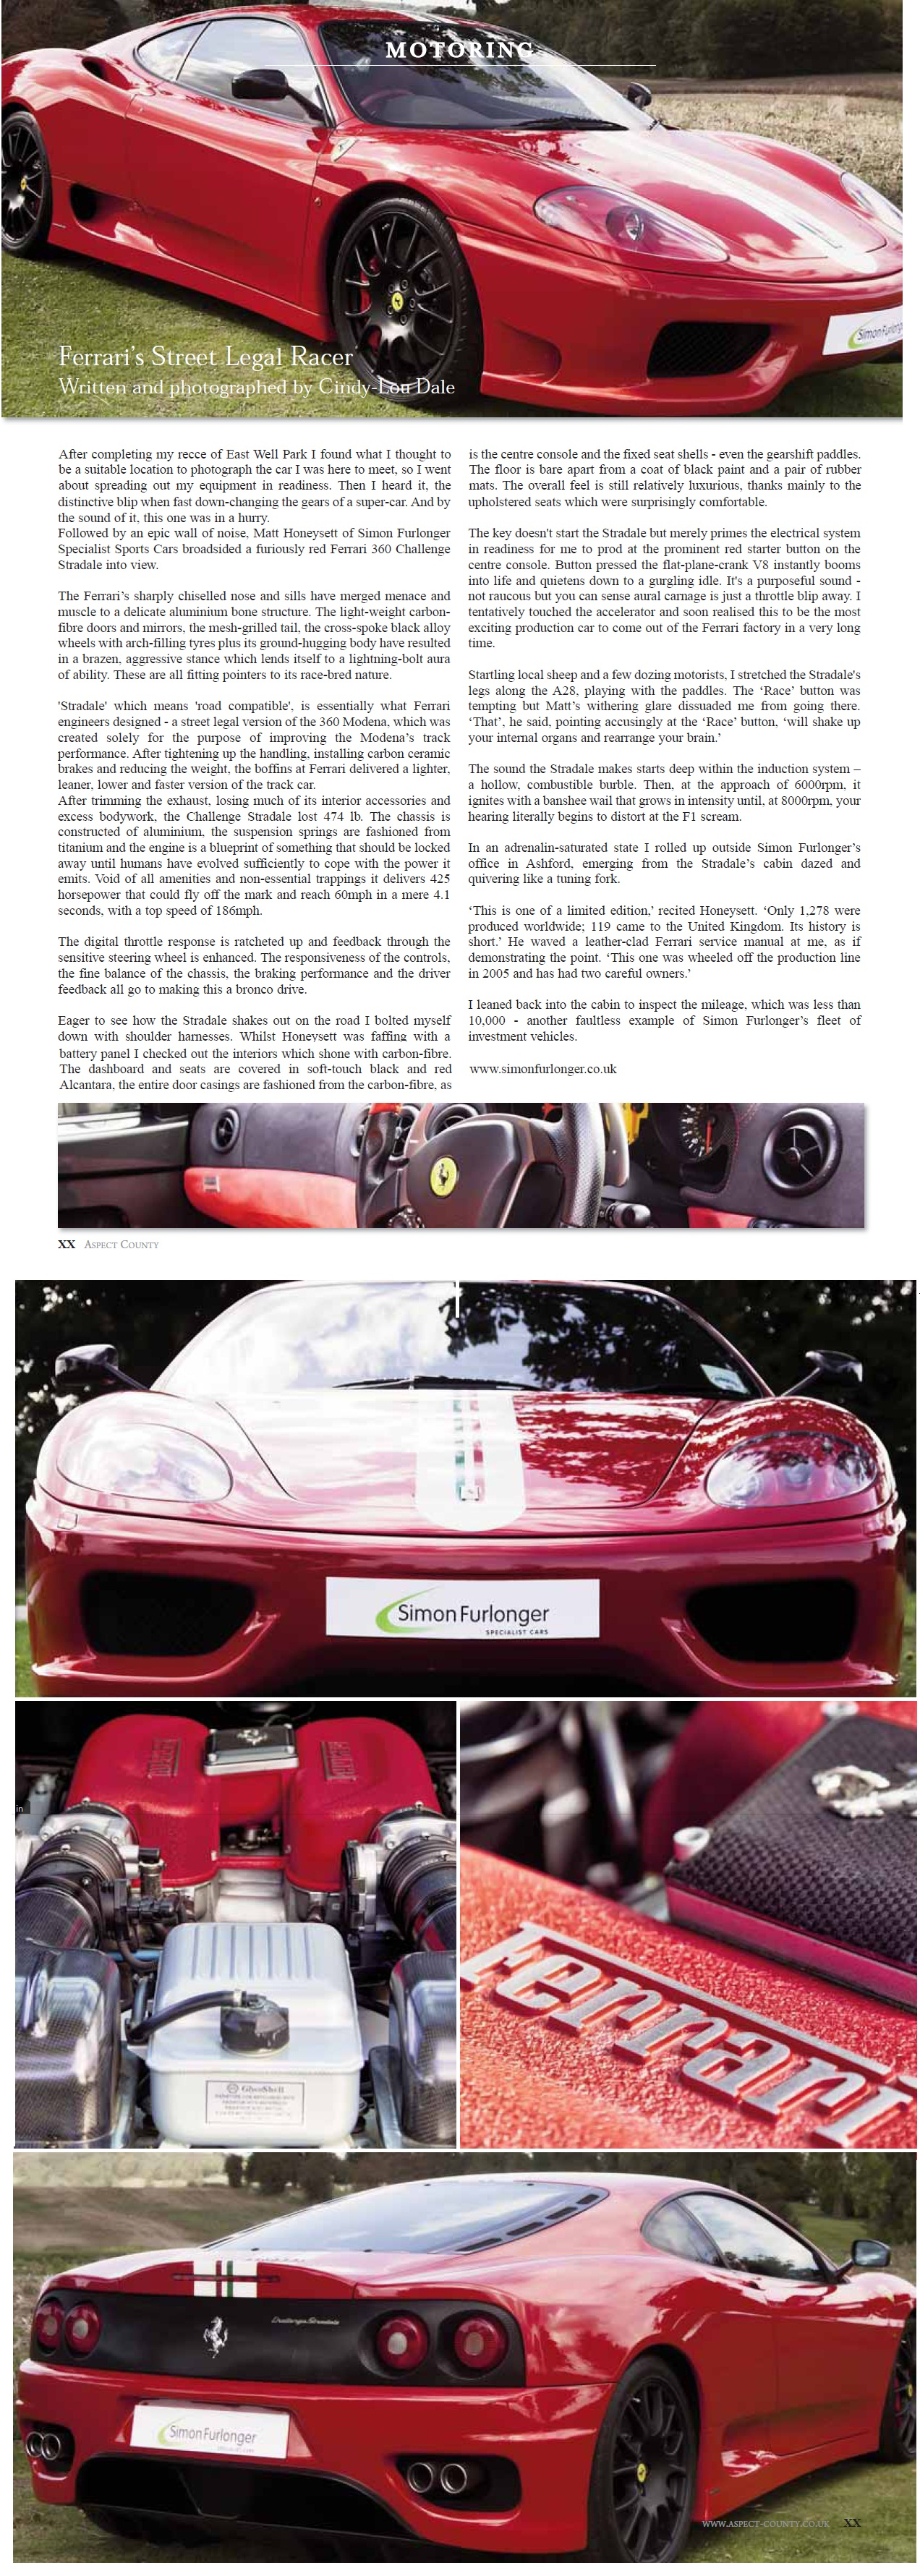 Aspect County, UK - Ferrari 360 Challenge Stradale